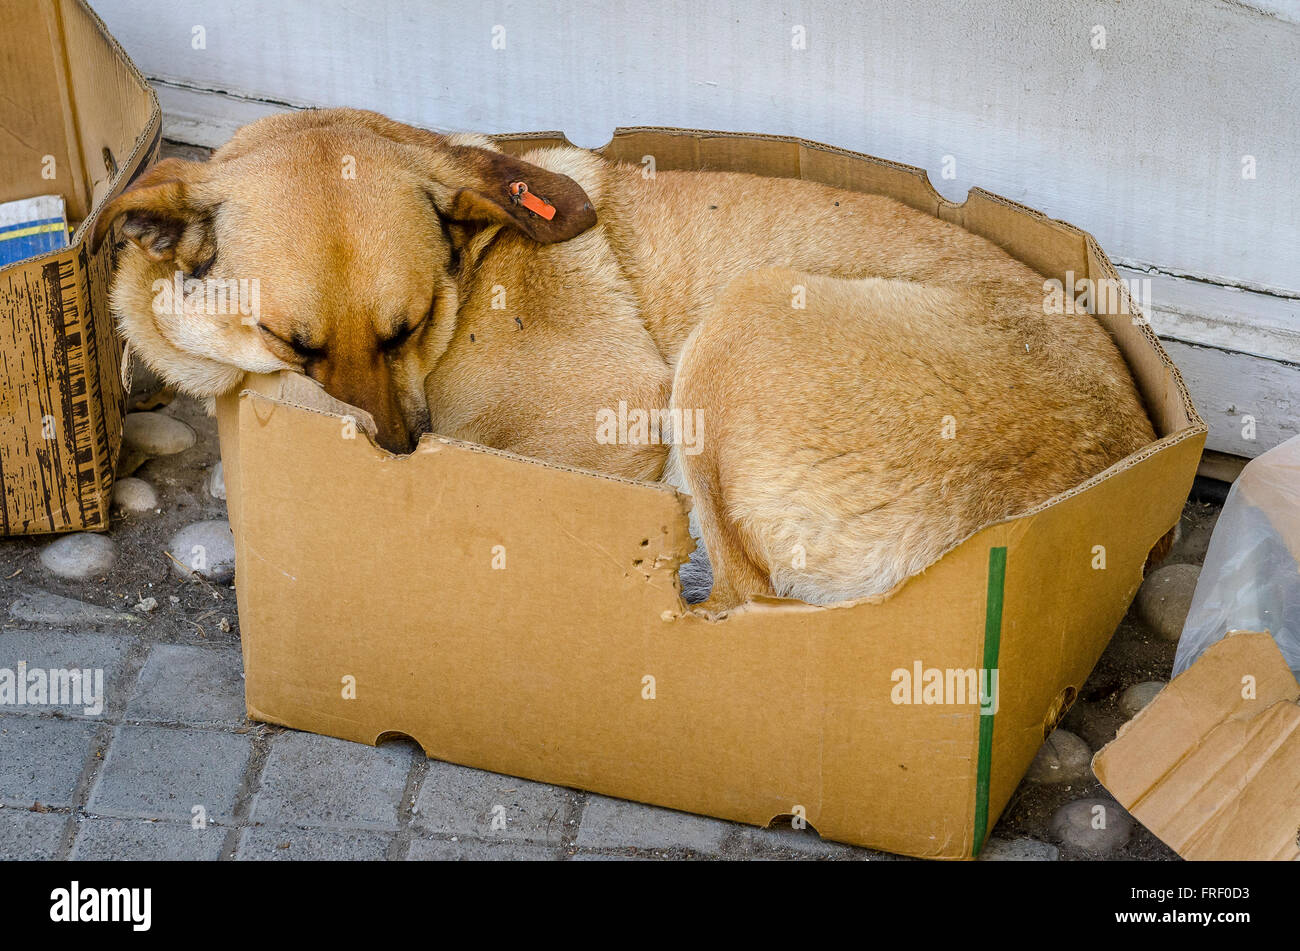 Dog sleeping rough on the street in a cardboard box. - Stock Image